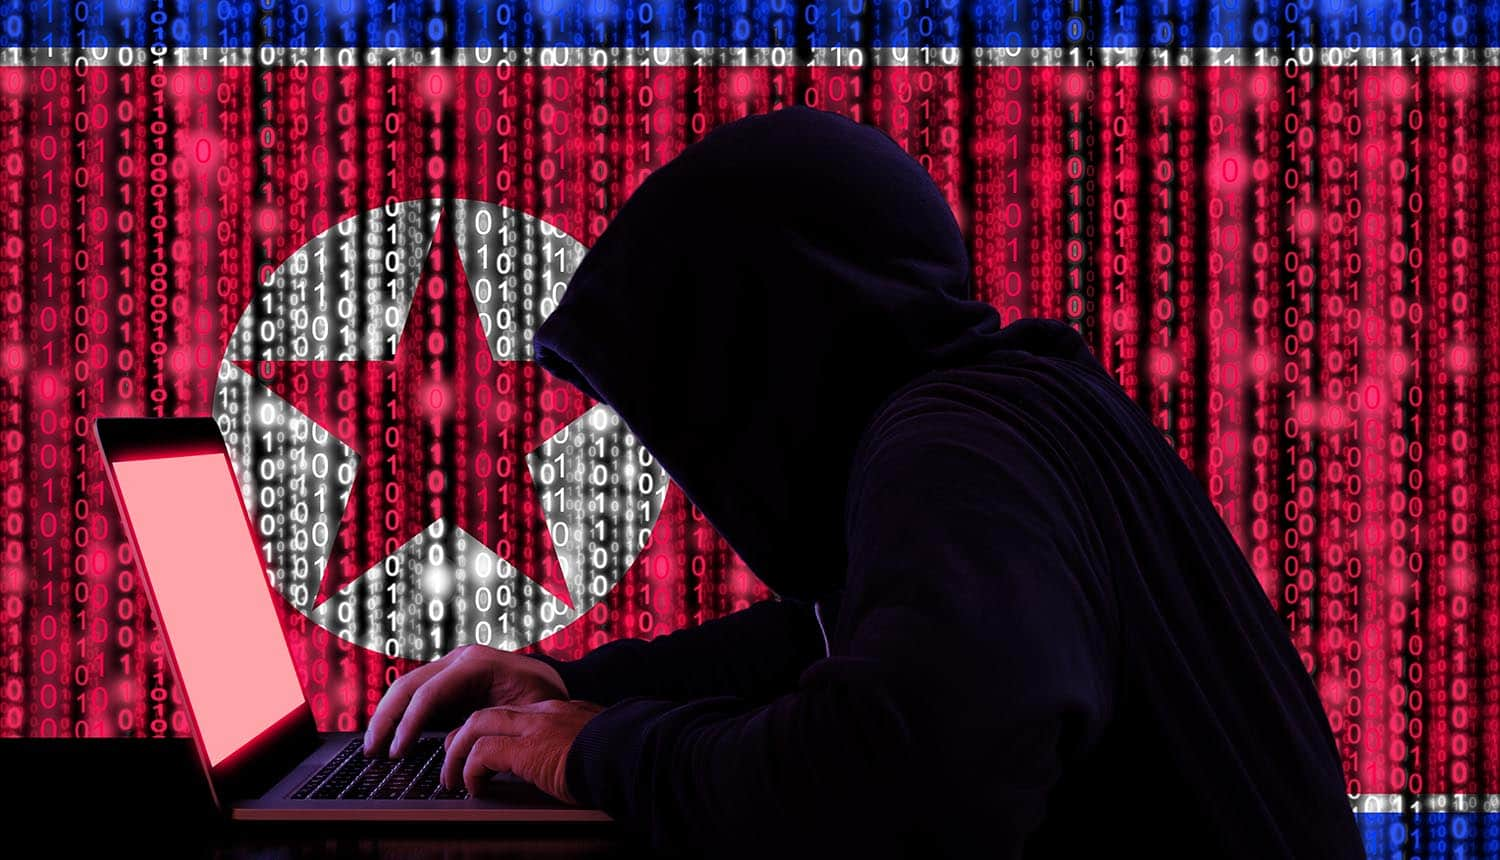 North Korean hacker sitting in front of laptop with digital North Korean flag in background conducting cyber attacks